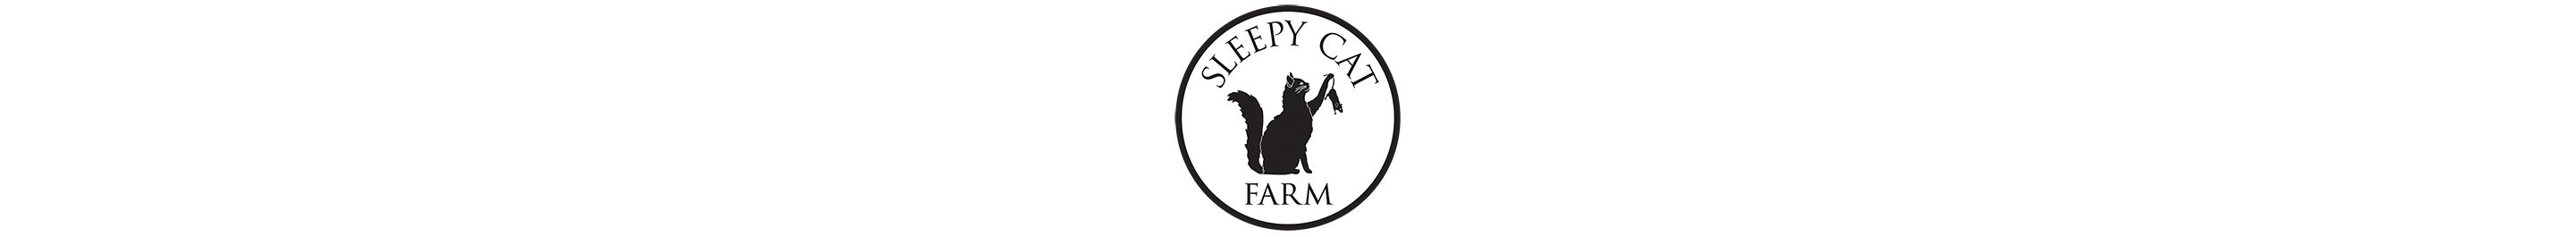 Sleepy Cat Farm